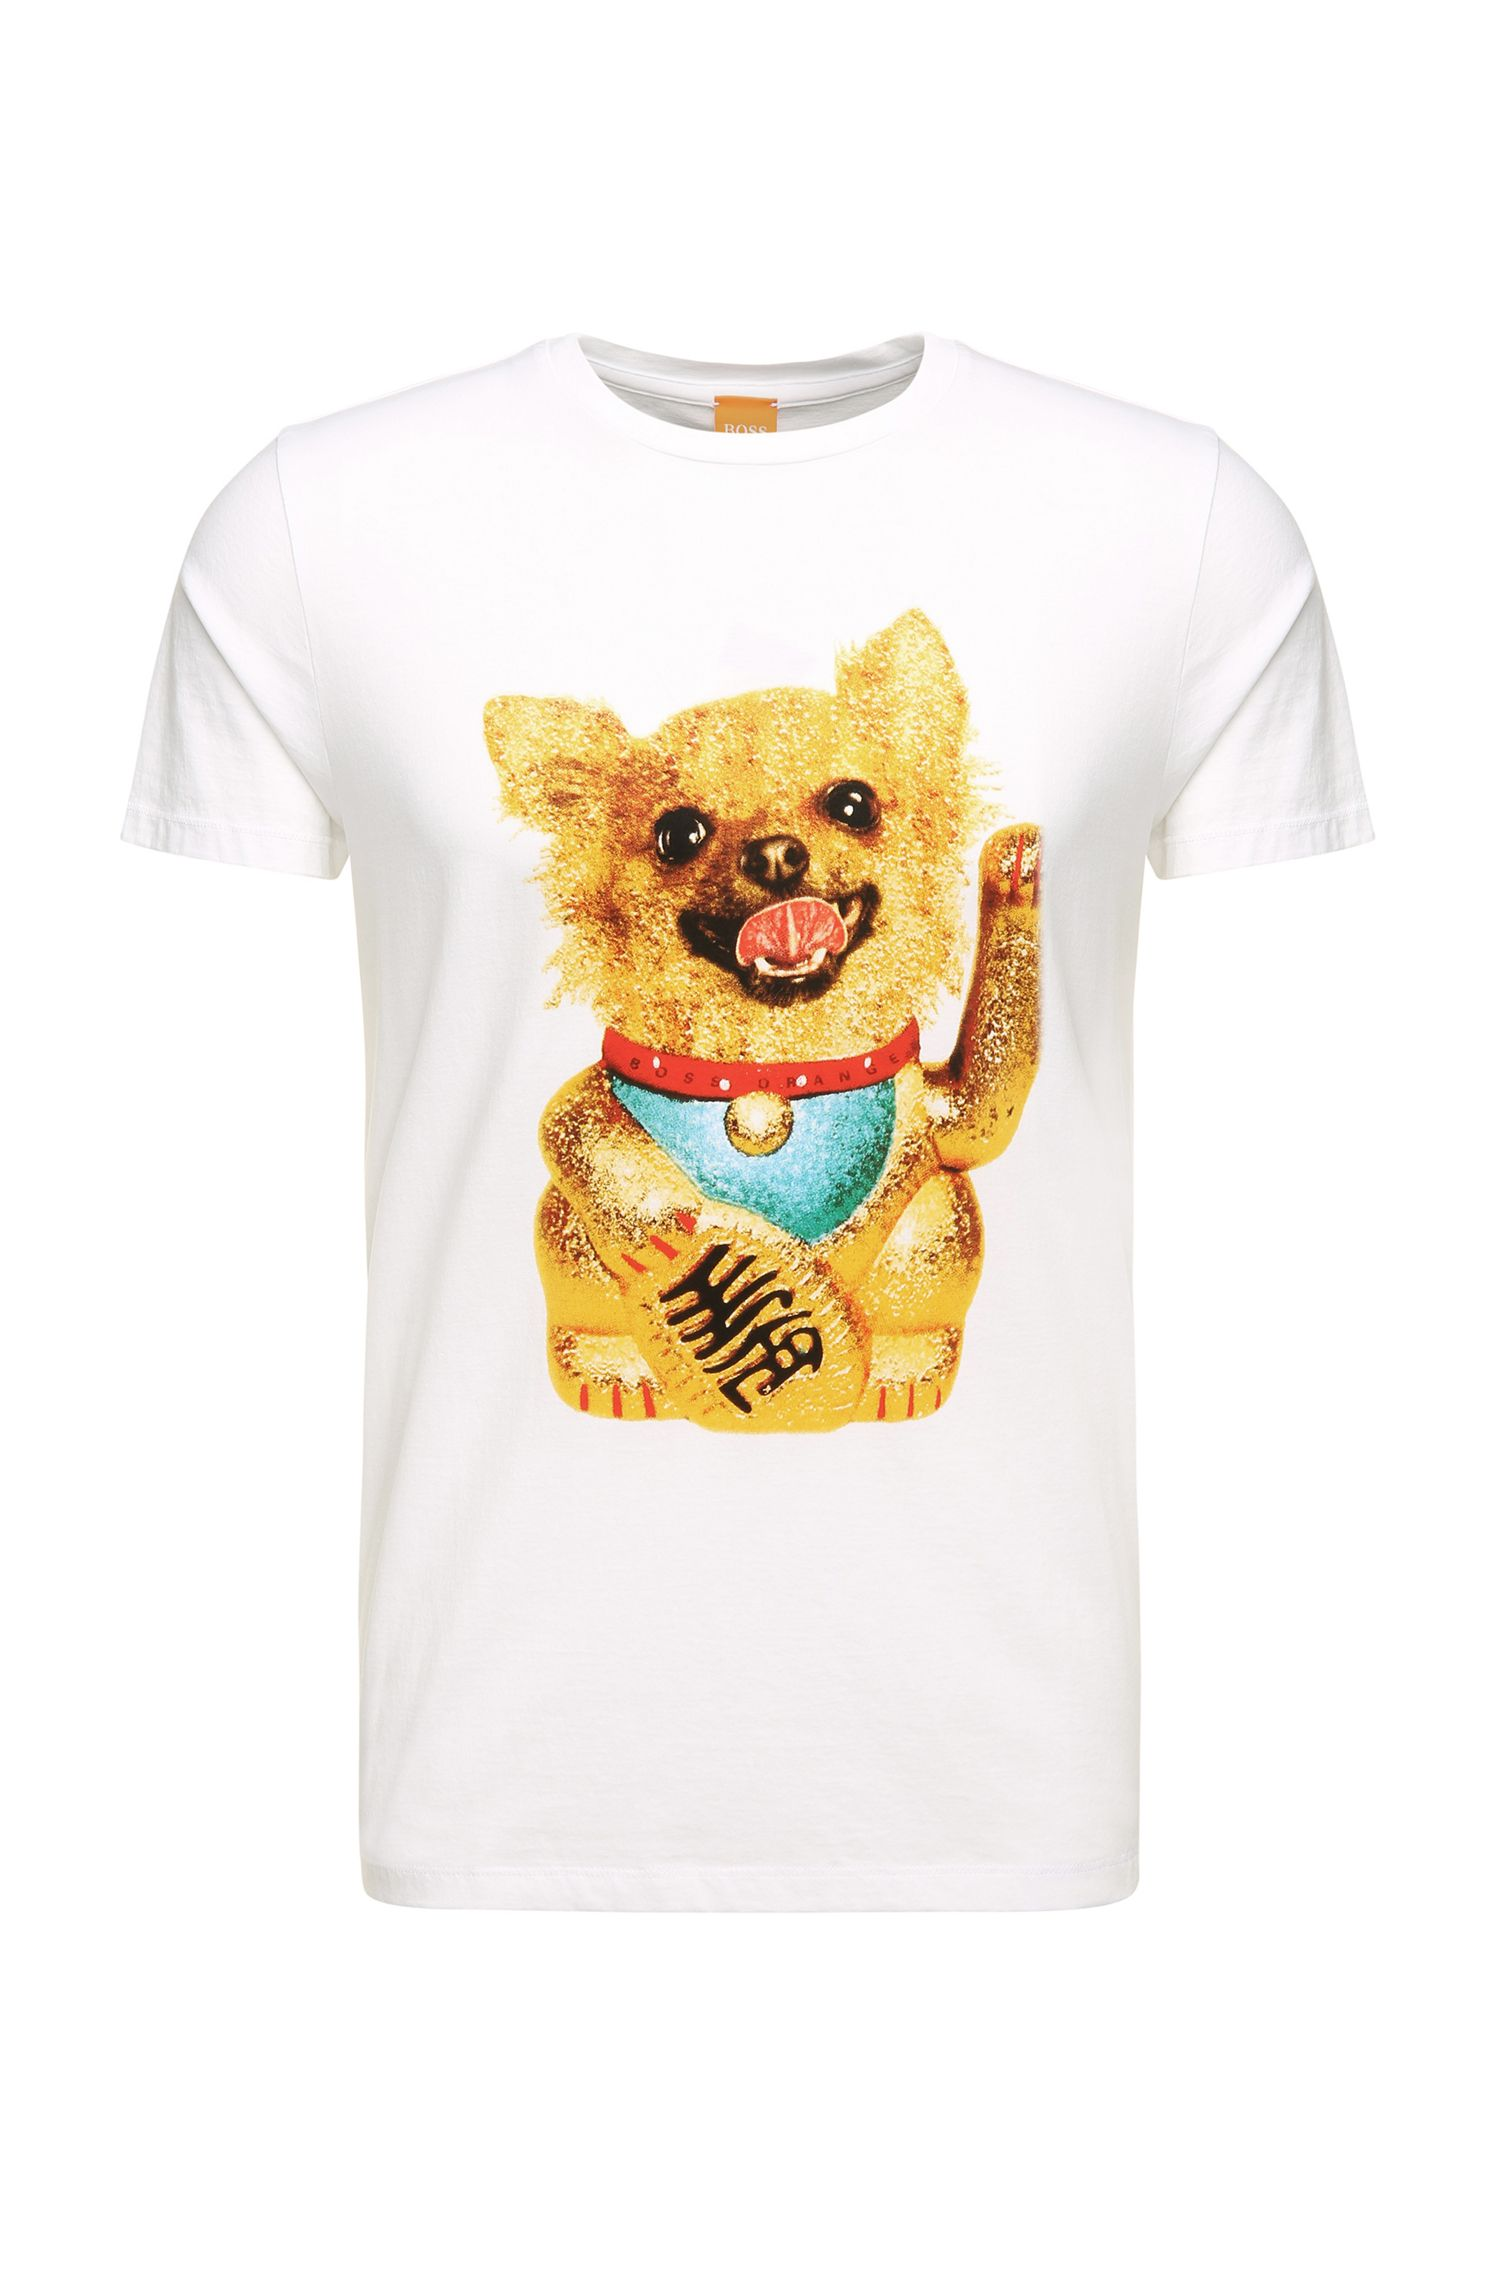 T-shirt Regular Fit en coton, à motif chien : « Talan 1 »